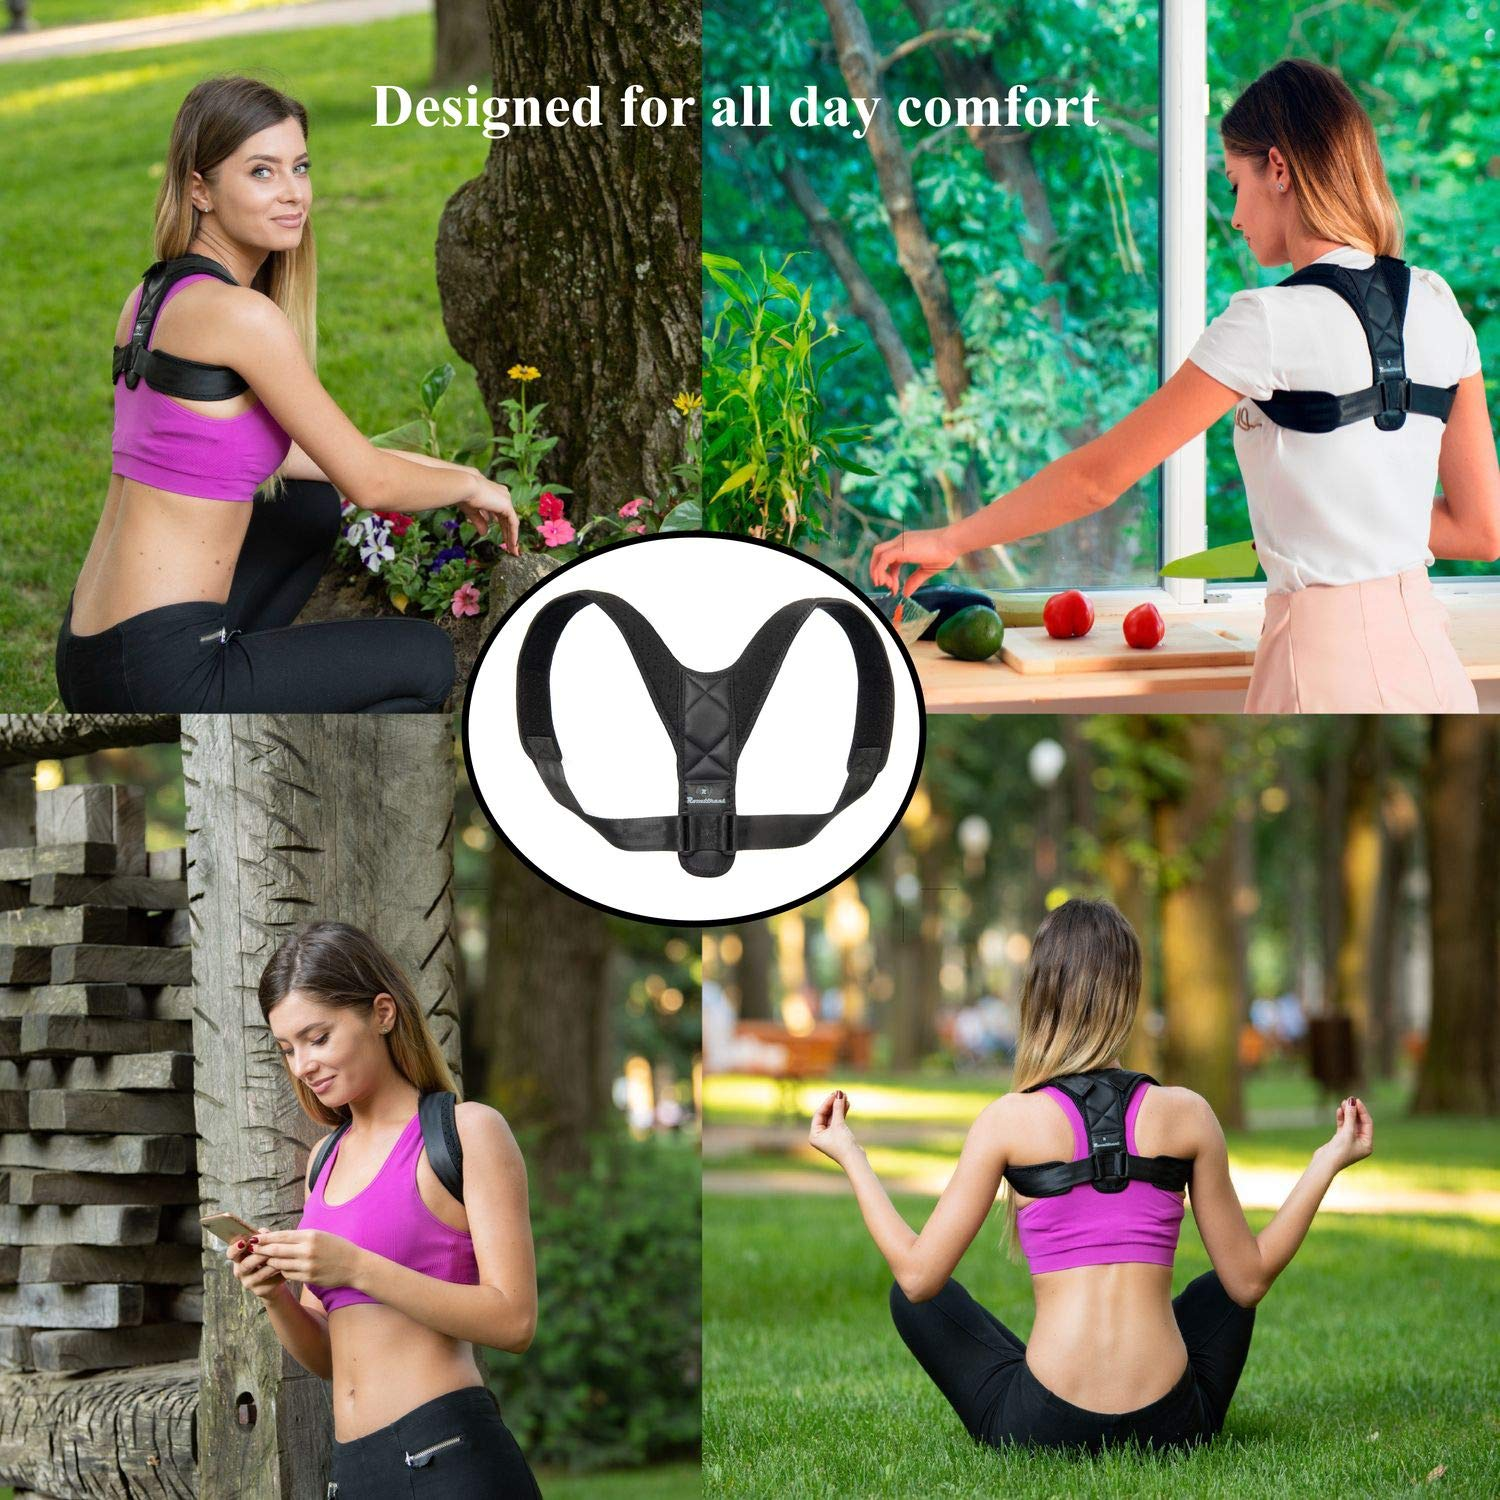 Back Posture Corrector for Women and Men-Breathable and Comfortable Clavicle Brace for Improving Posture-Adjustable and Discreet Clavicle Support Brace for Slouching & Hunching by Roxattract (Image #6)